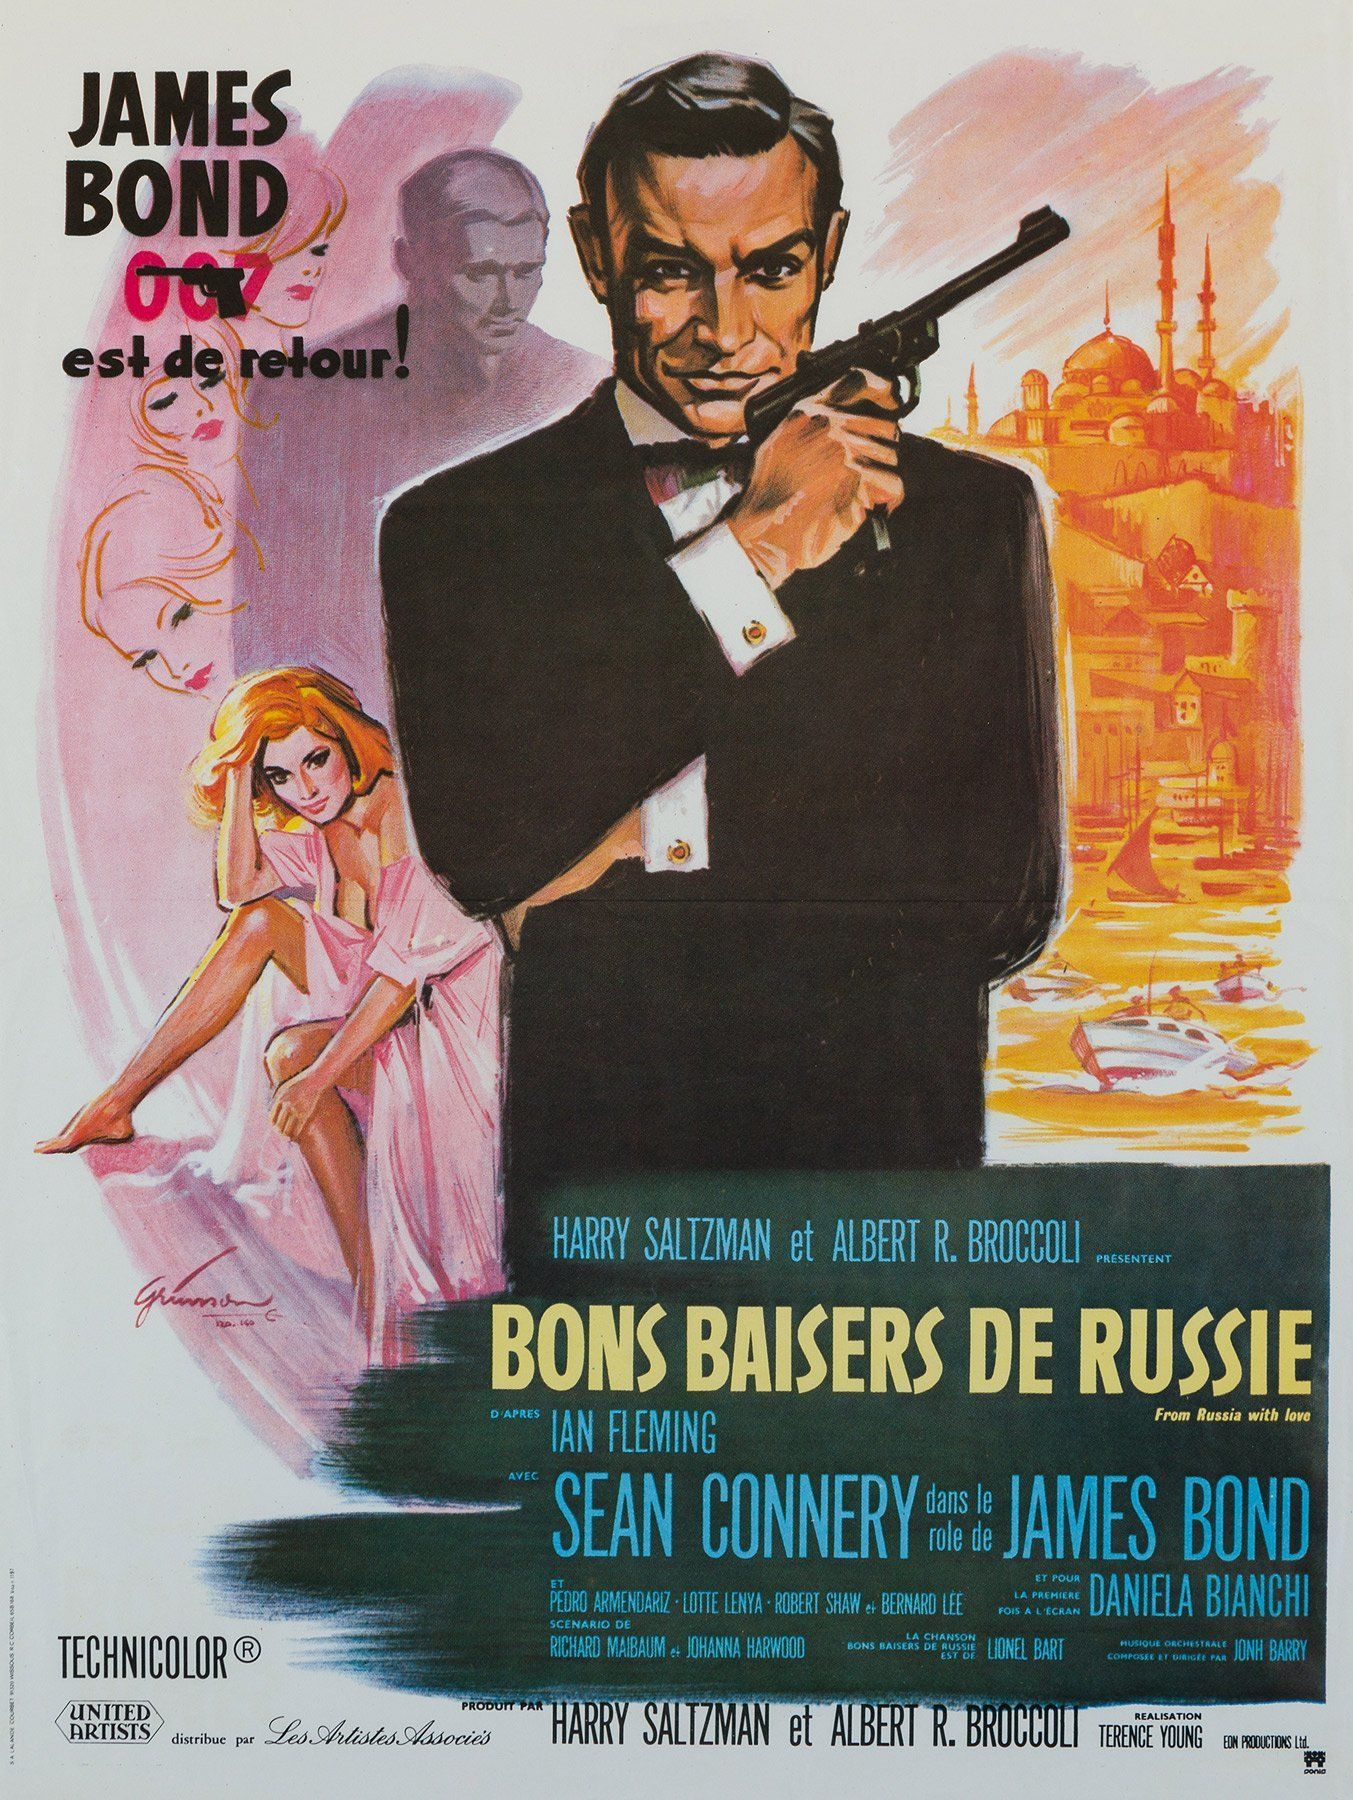 From Russia With Love Film Movie Poster In 2019 Vintage Film